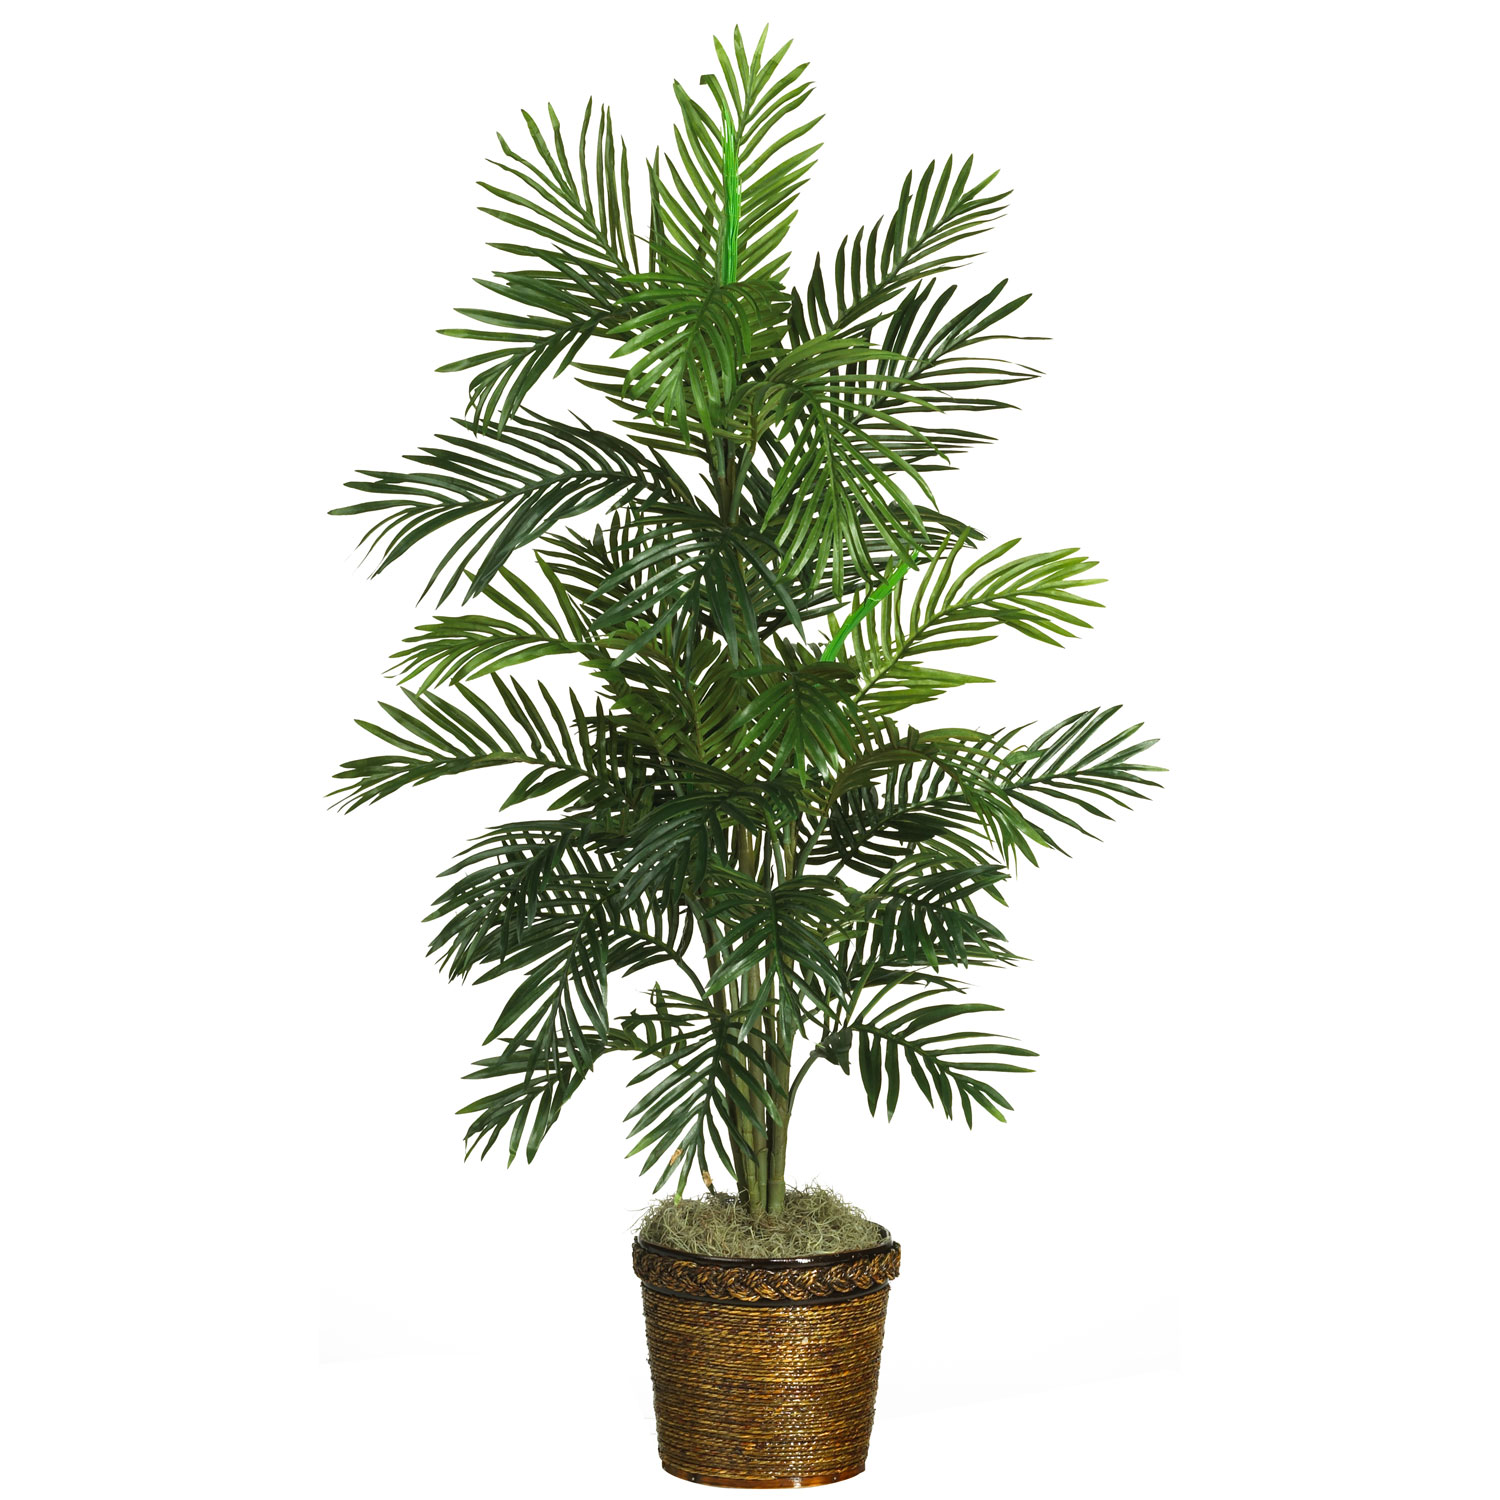 56 inch areca palm tree in basket 5263 0308 for Pictures of areca palm plants